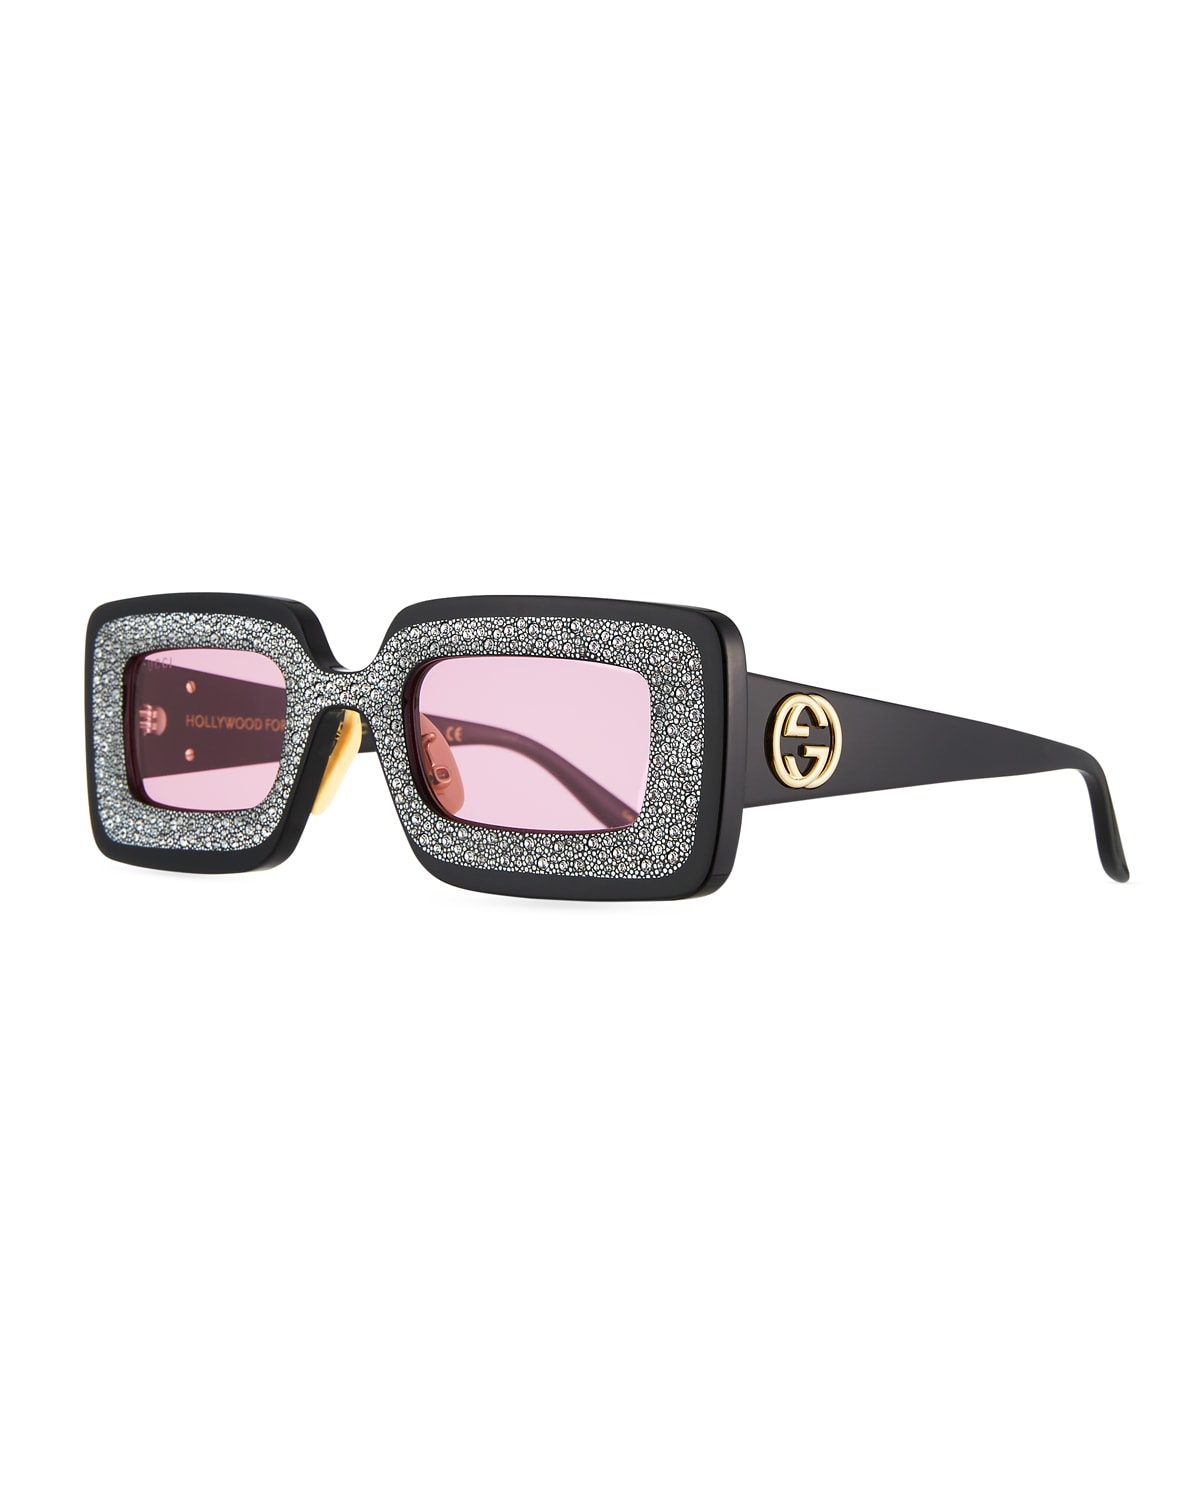 Hollywood Forever Rectangular Acetate Sunglasses with Crystals